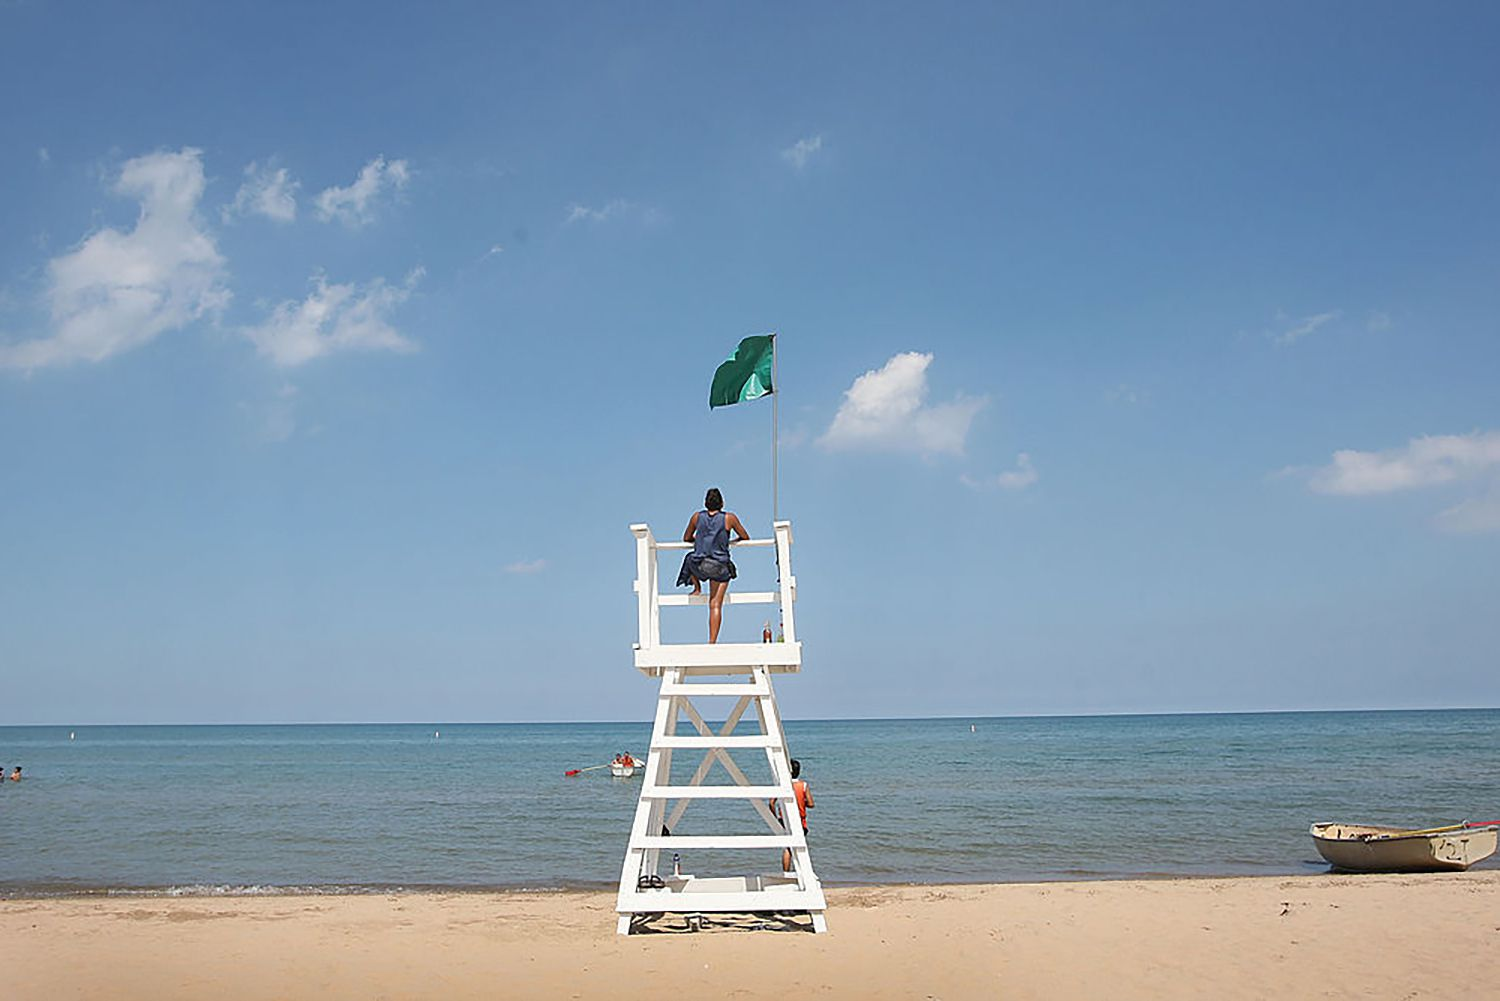 Lifeguard stand at Kathy Osterman Beach in Chicago